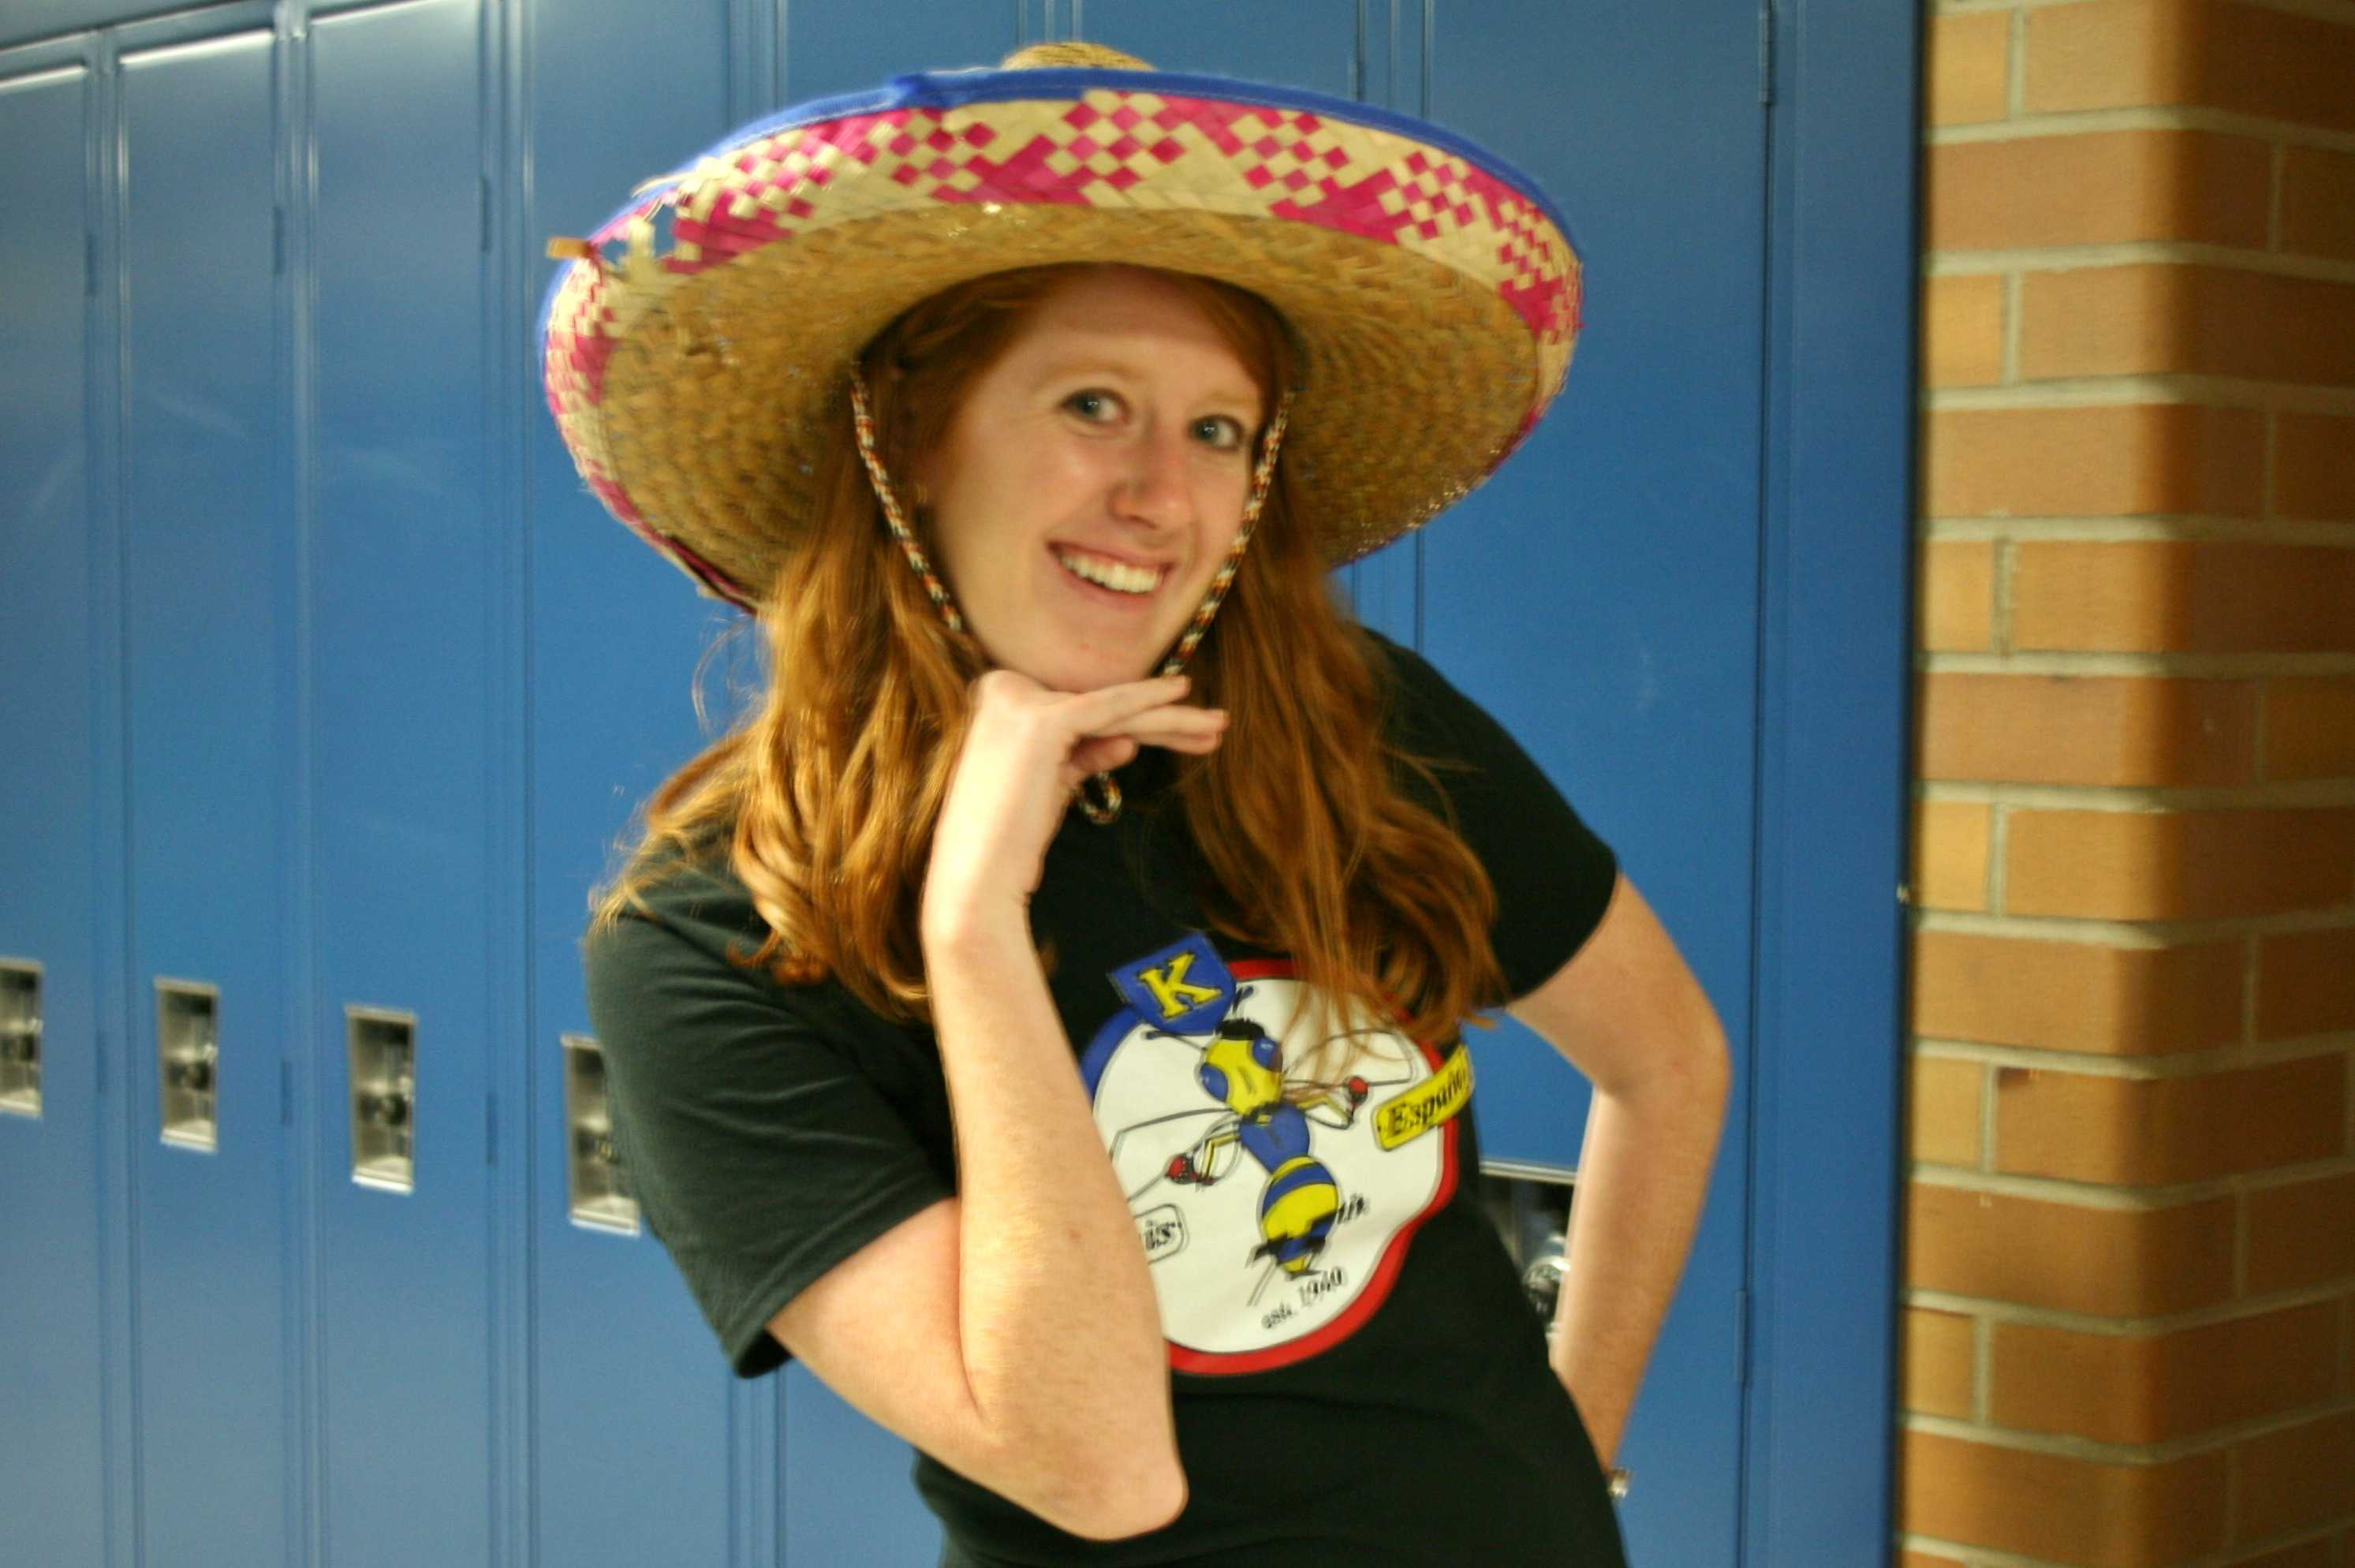 Ms. Caitlin Hudgins shows off her sombrero as a tourist from Mexico for Tourist Thursday.